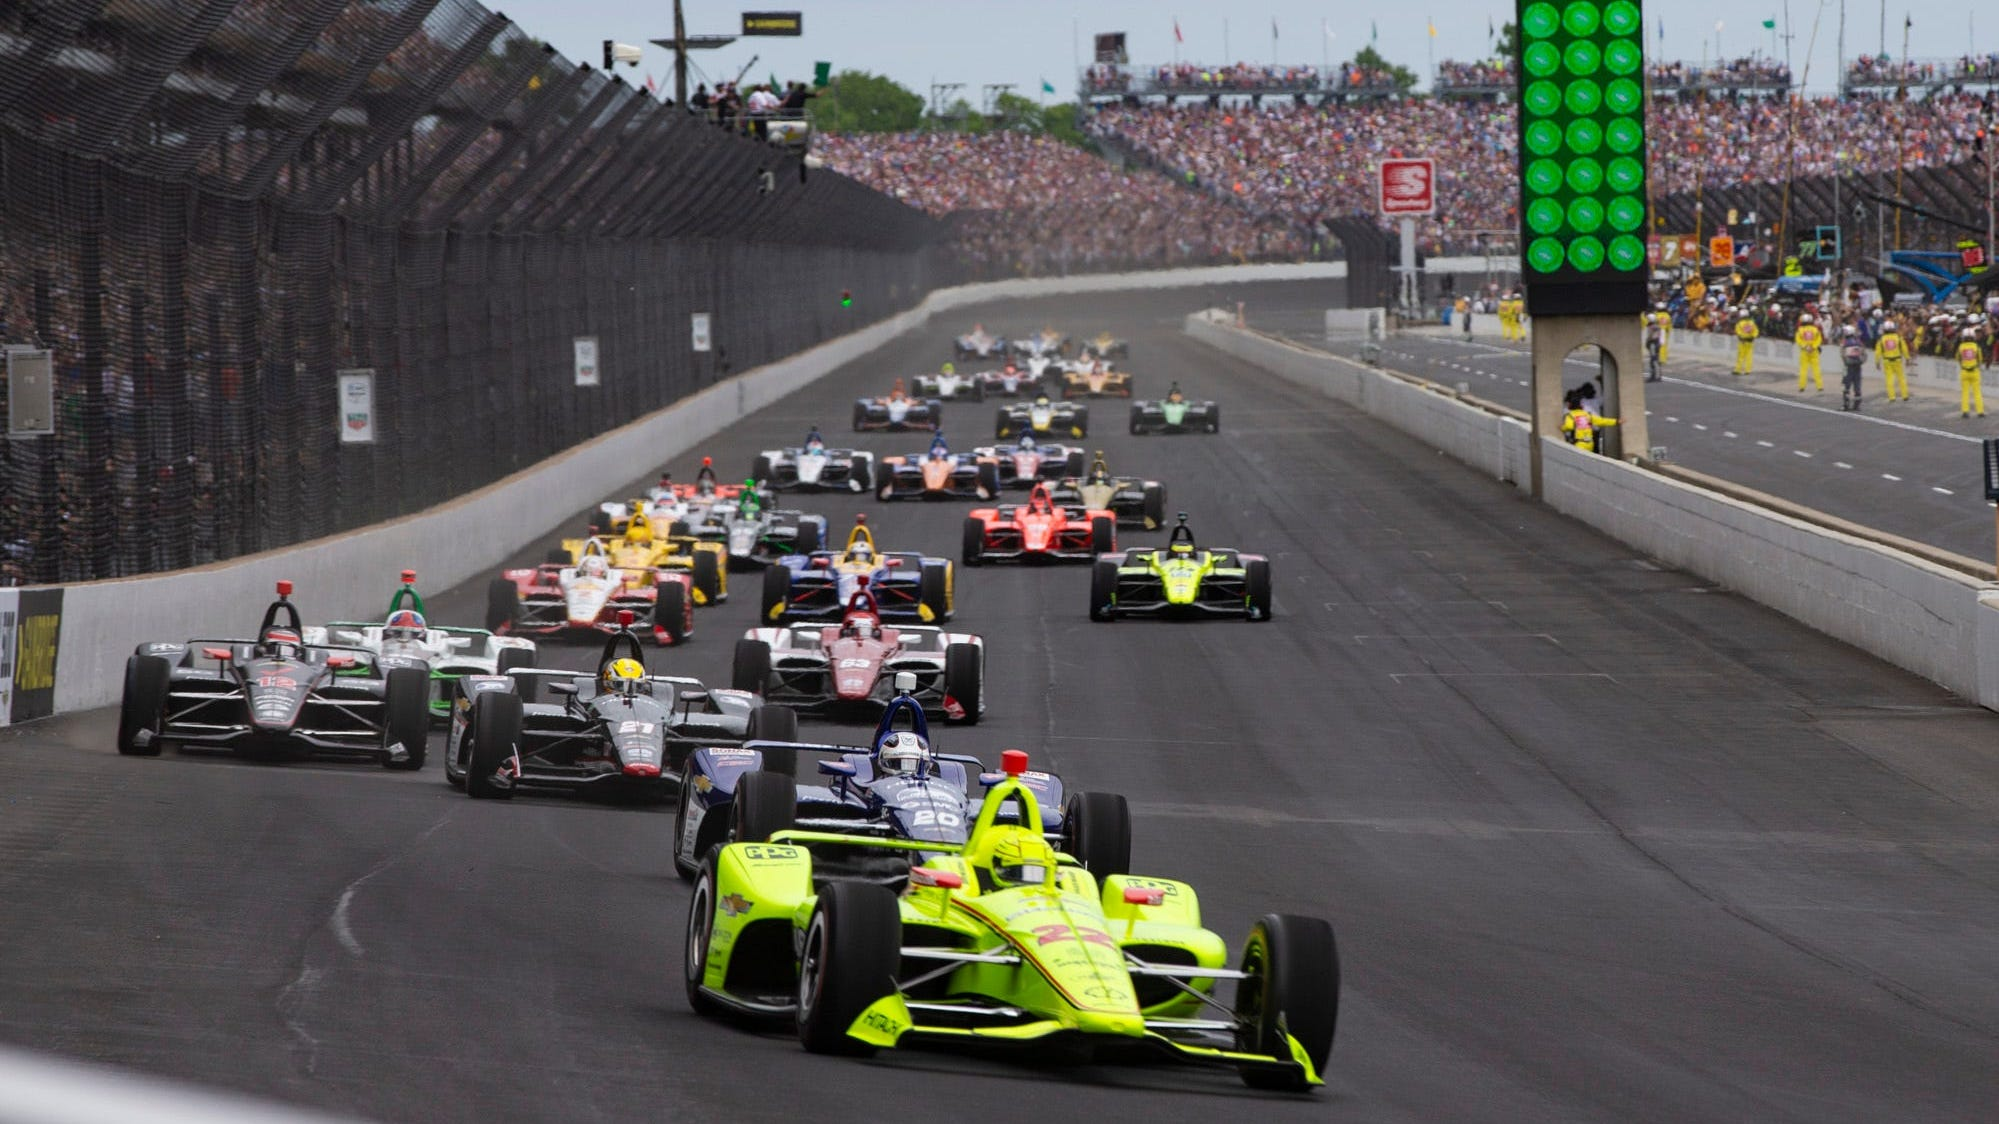 2021 Indy 500: Start time, lineup, TV, streaming schedule and more for the 105th running at Indianapolis